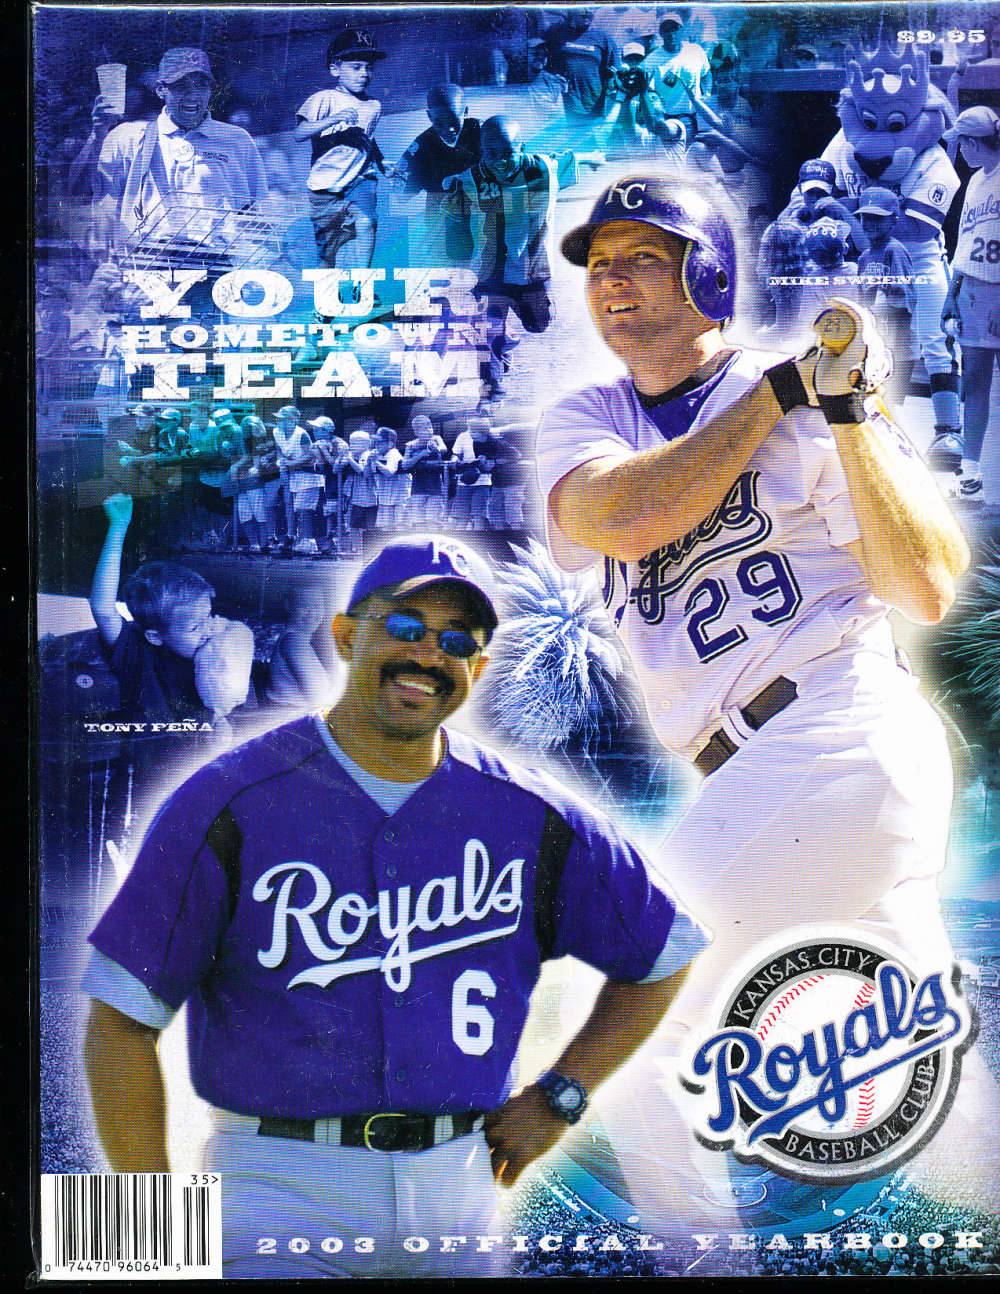 2003 Kansas city Royals baseball yearbook